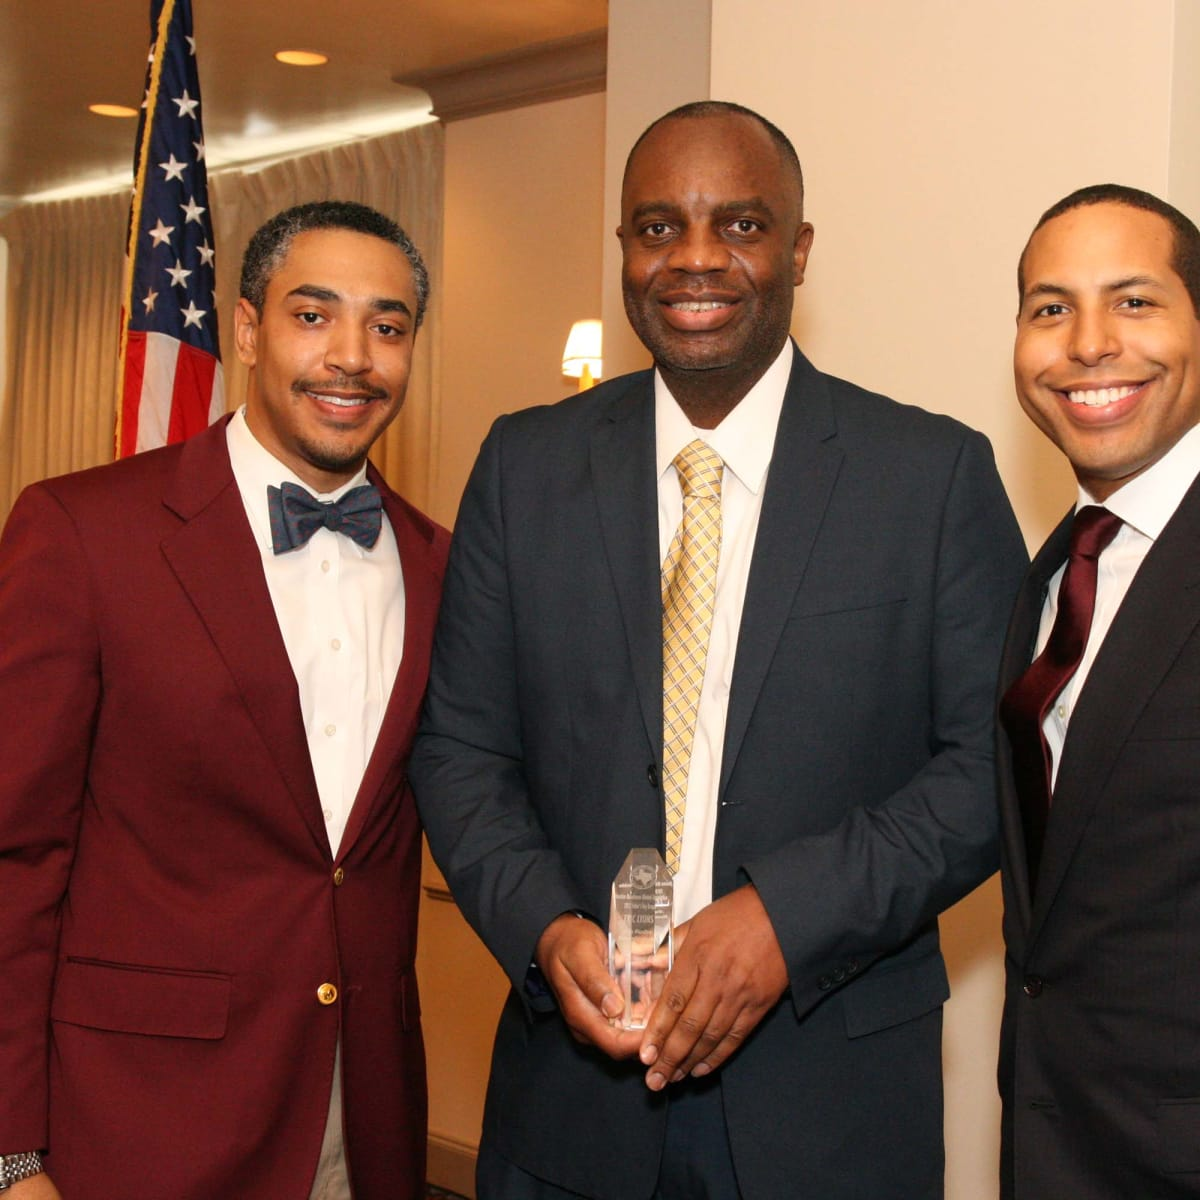 News, Shelby, Morehouse College Father's Day event, June 2015, Will Norwood, Eric Lyons, Bryce Kennard